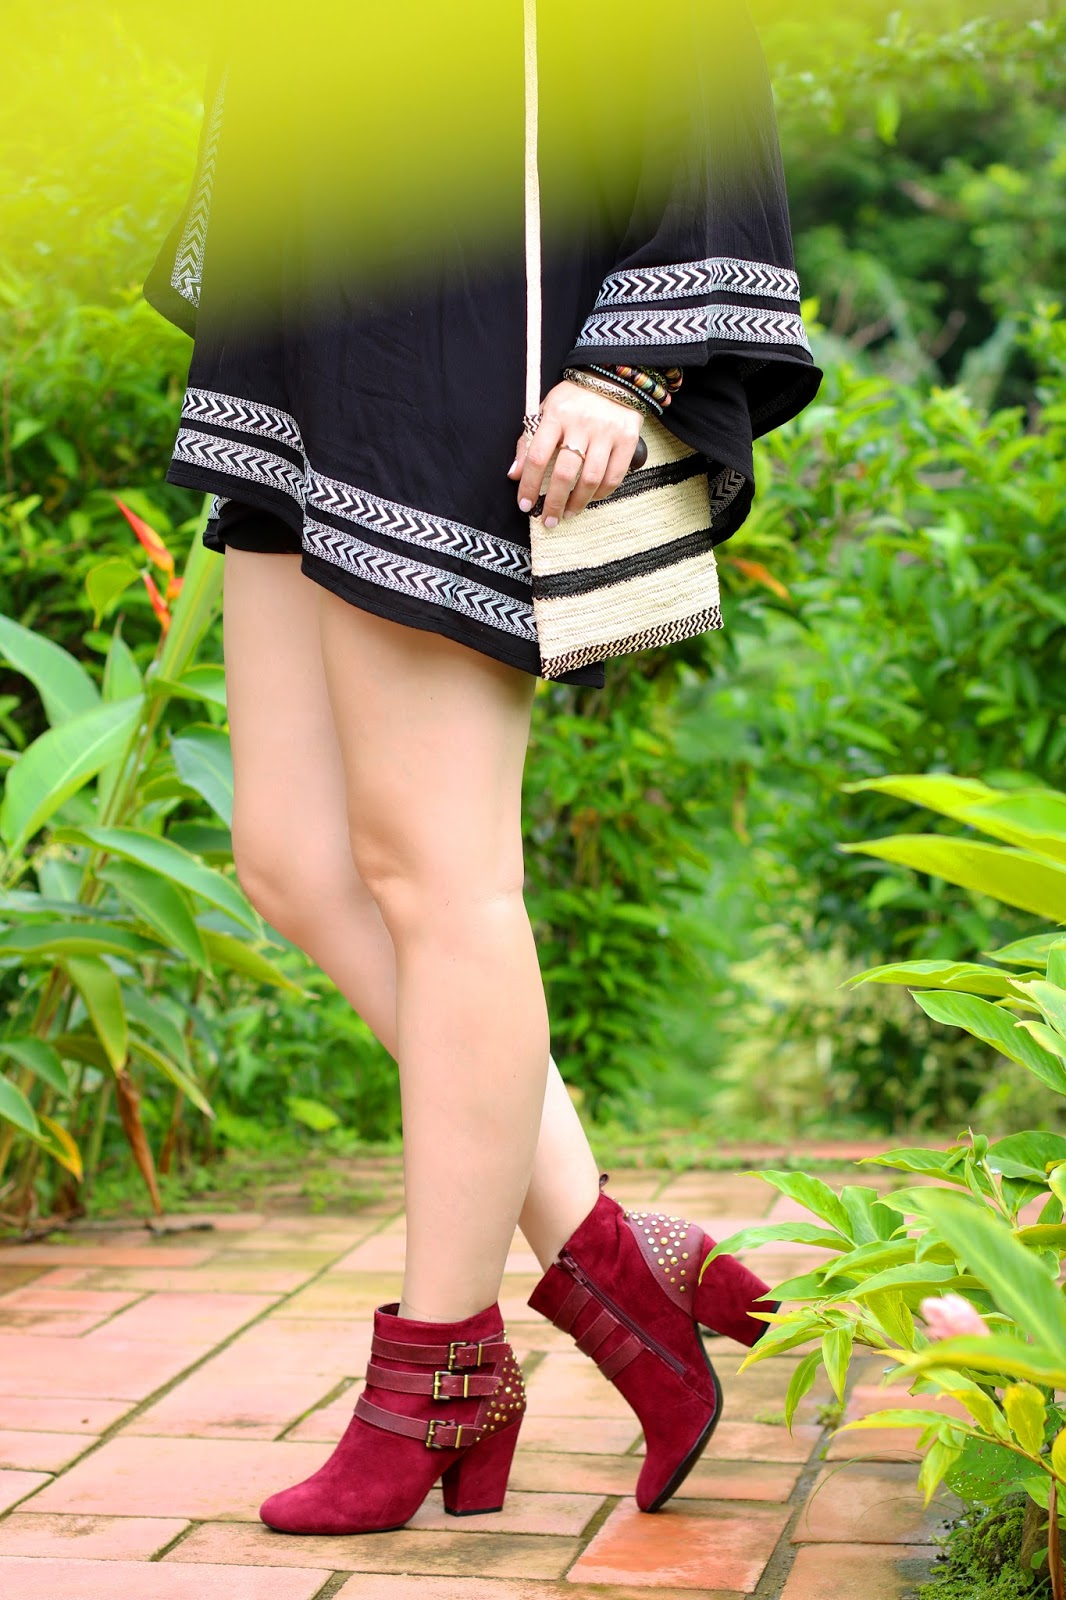 This red booties are the perfect pop of color to a neutral outfit